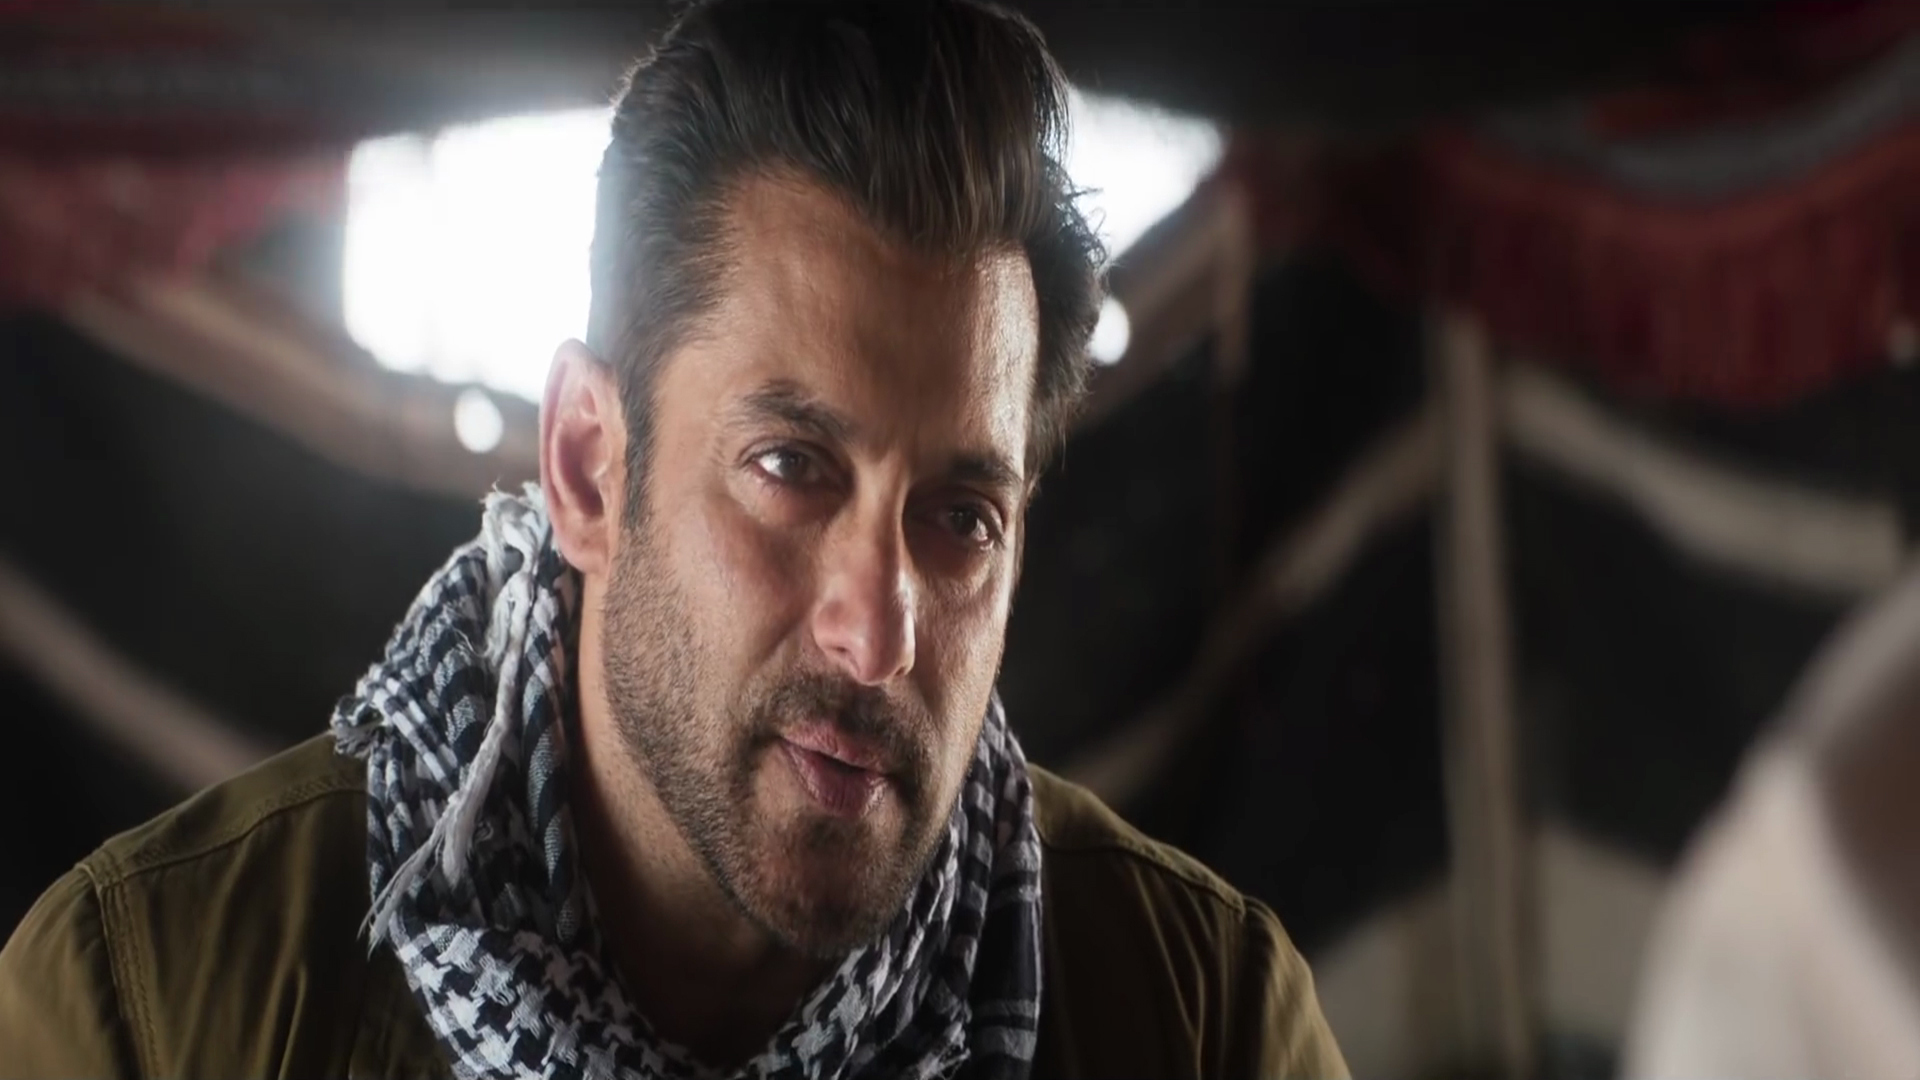 Hindi Film Tiger Zinda Hai Hd Wallpapers Hd Wallpapers